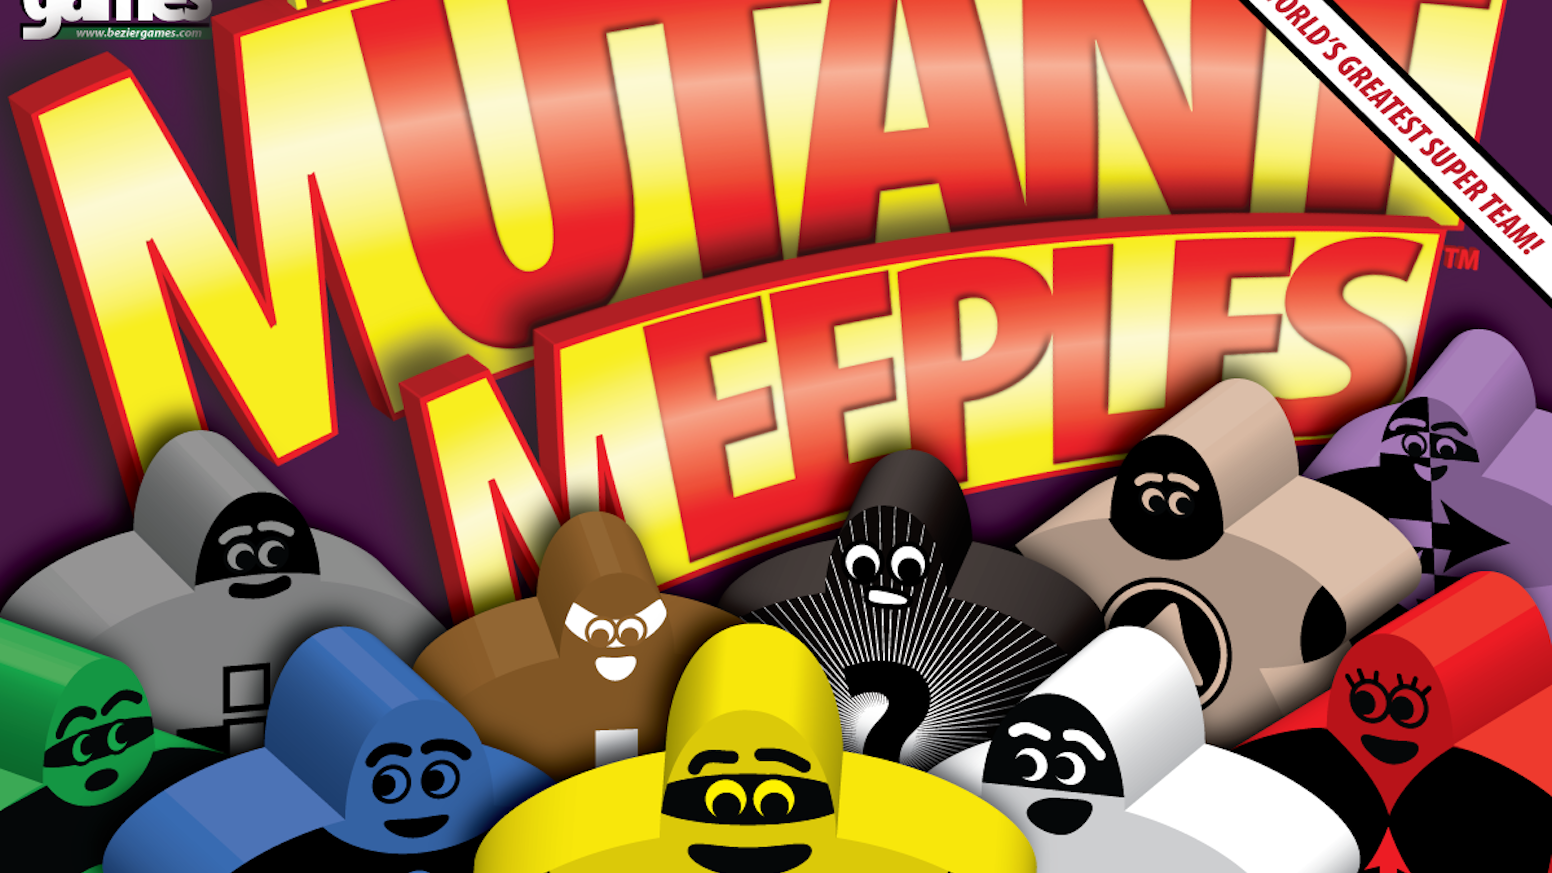 Mutant Meeples by Bezier Games — Kickstarter